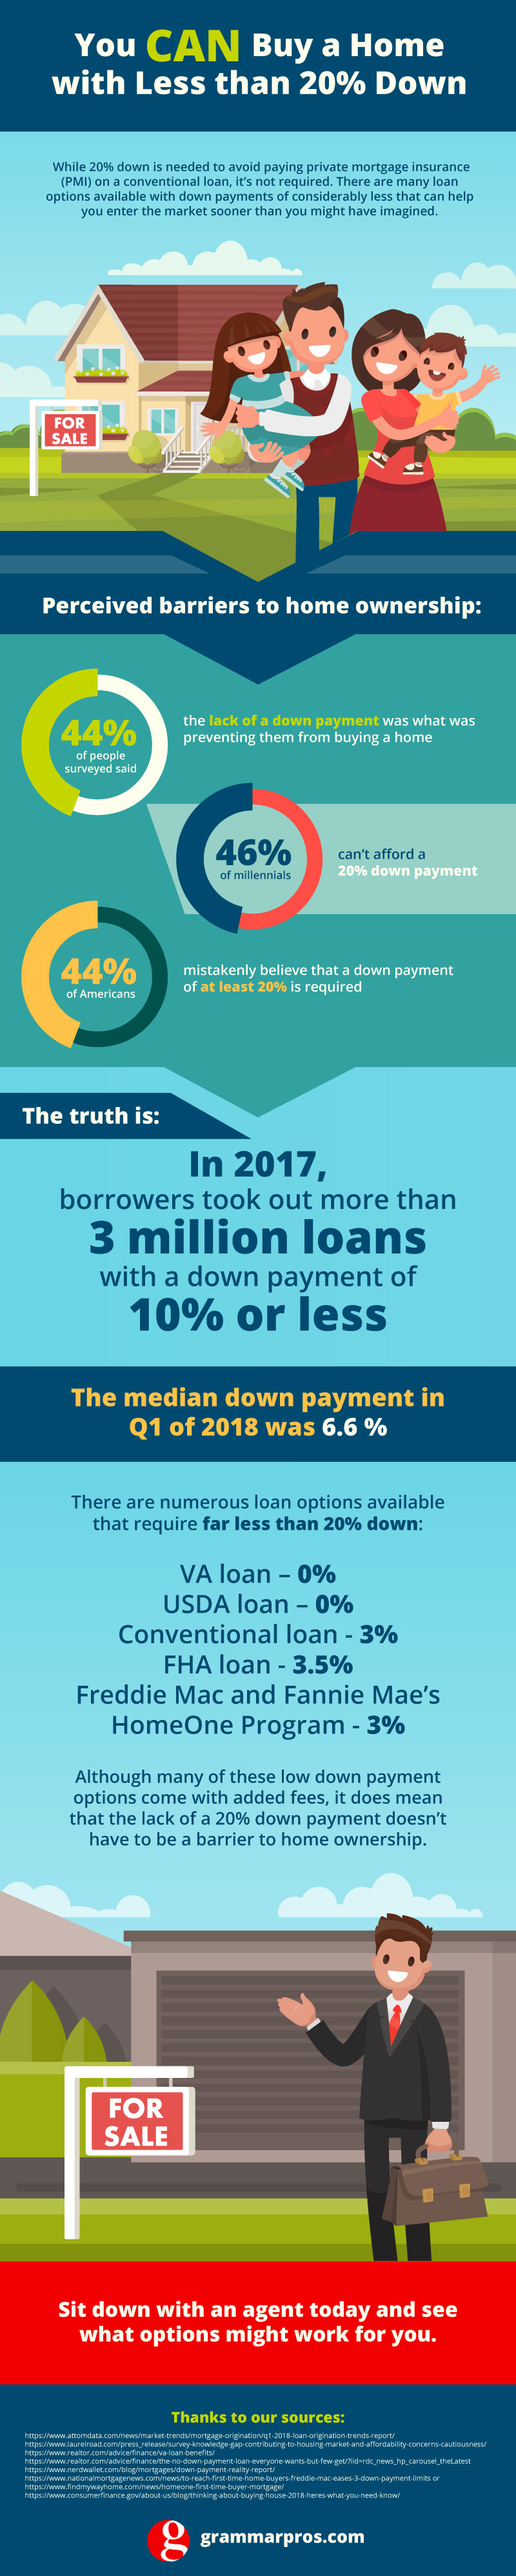 Do you need a 20% down payment? No! There are several down payment assistance programs or low down payment programs available.